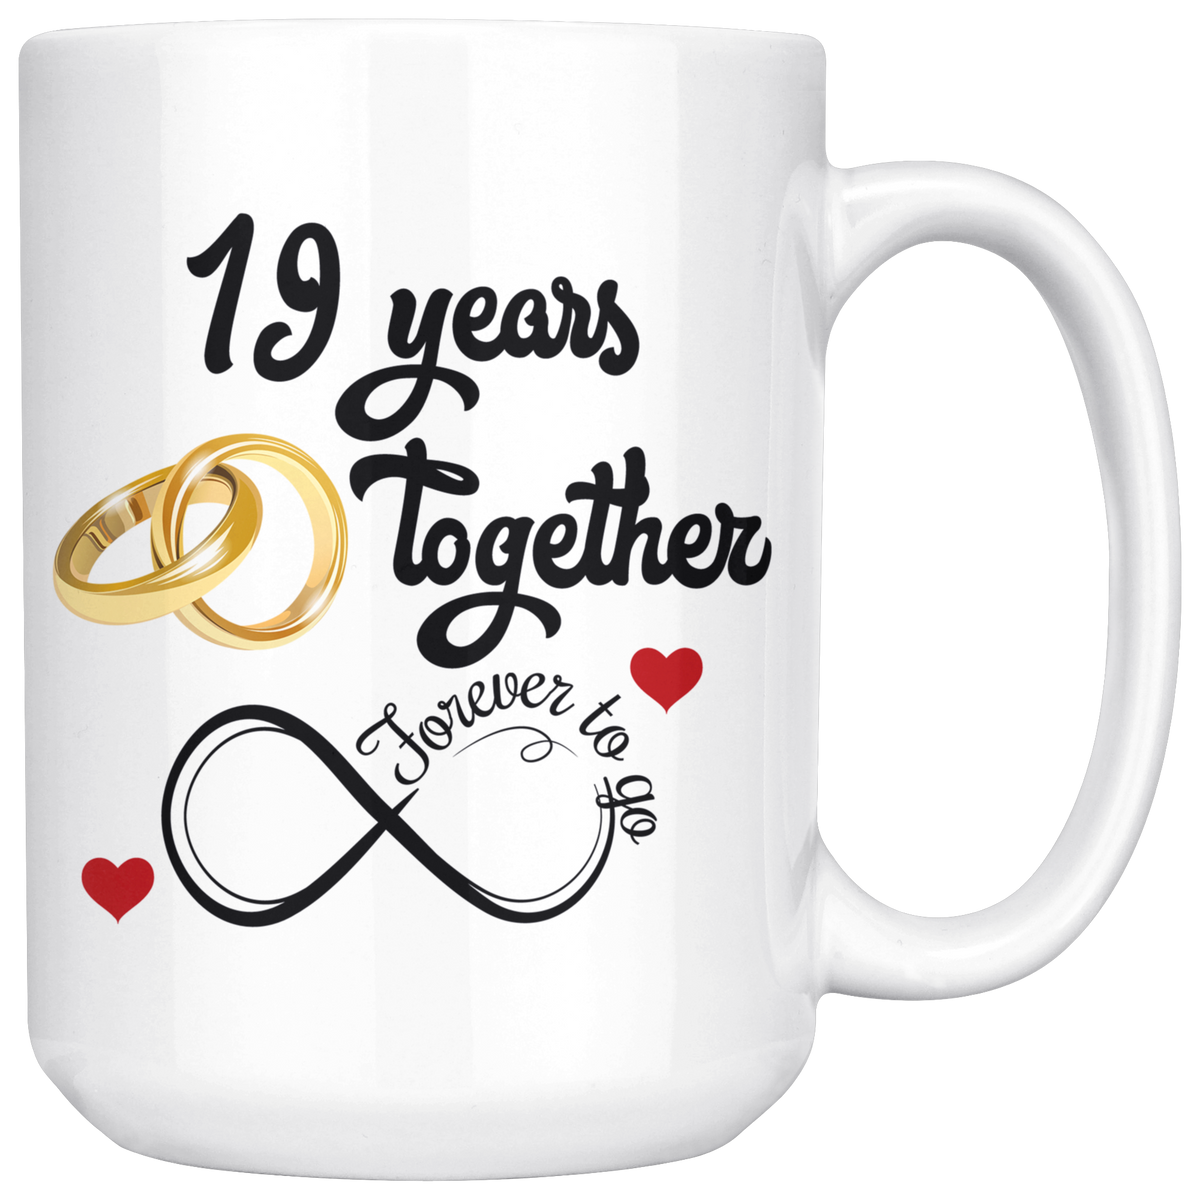 One Year Wedding Anniversary Gifts: 19th Wedding Anniversary Gift For Him And Her, Married For